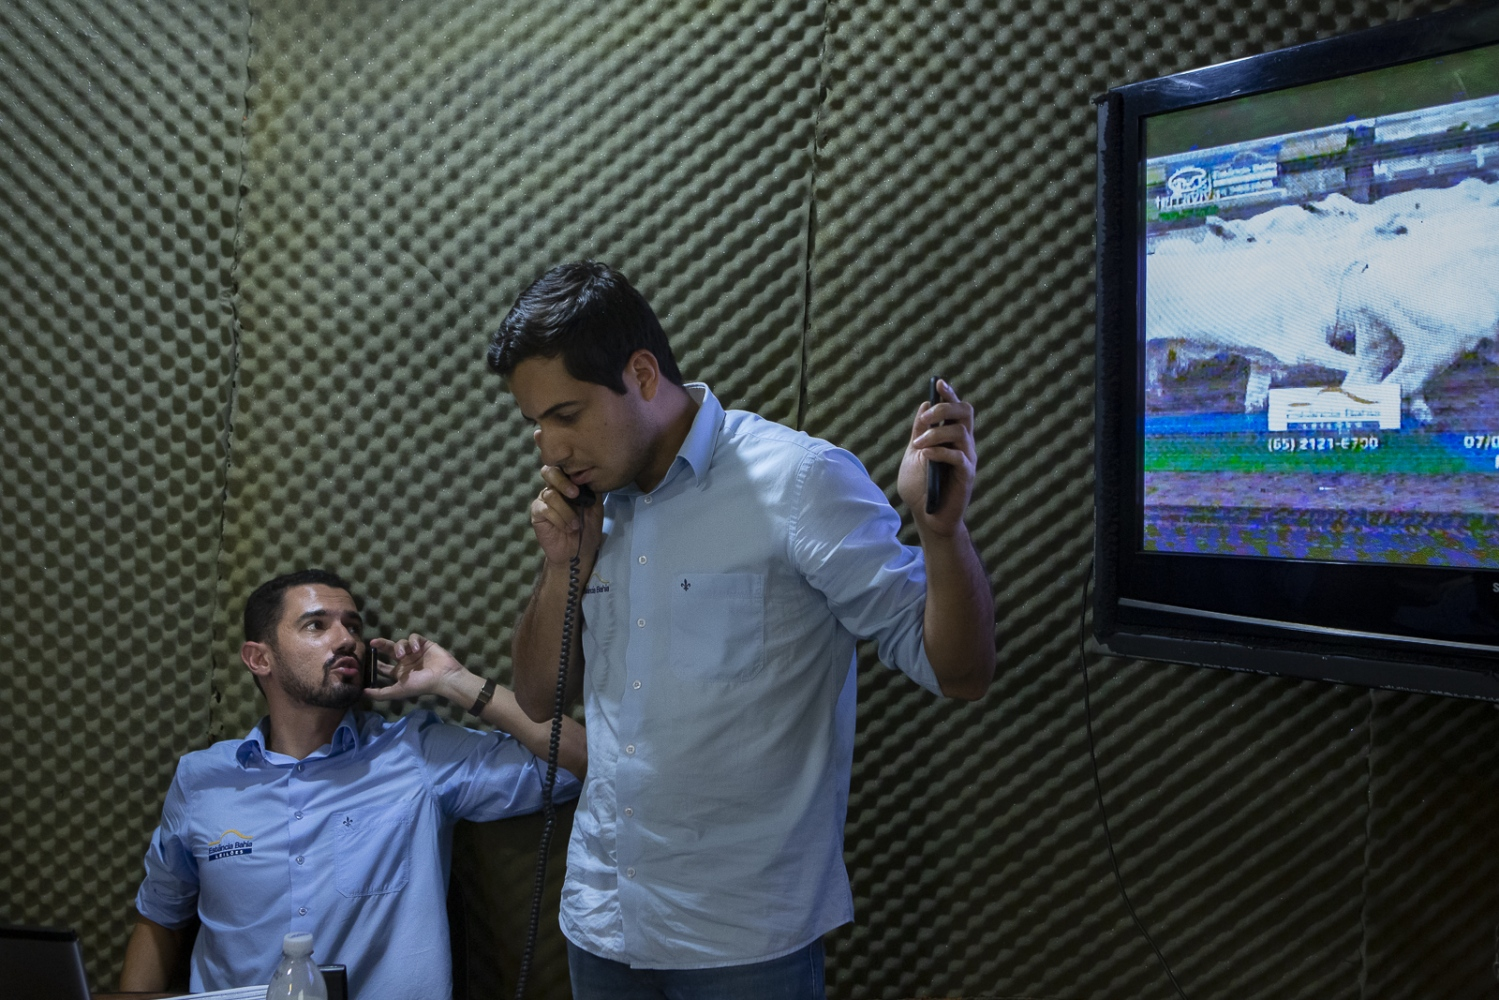 Max Queiroz and Tulio, commercial auctioneers, selling at the virtual auction Estancia Bahia, where animals are sold live on television to buyers from all over Brazil. Cuiaba, Mato Grosso, Brazil 2017